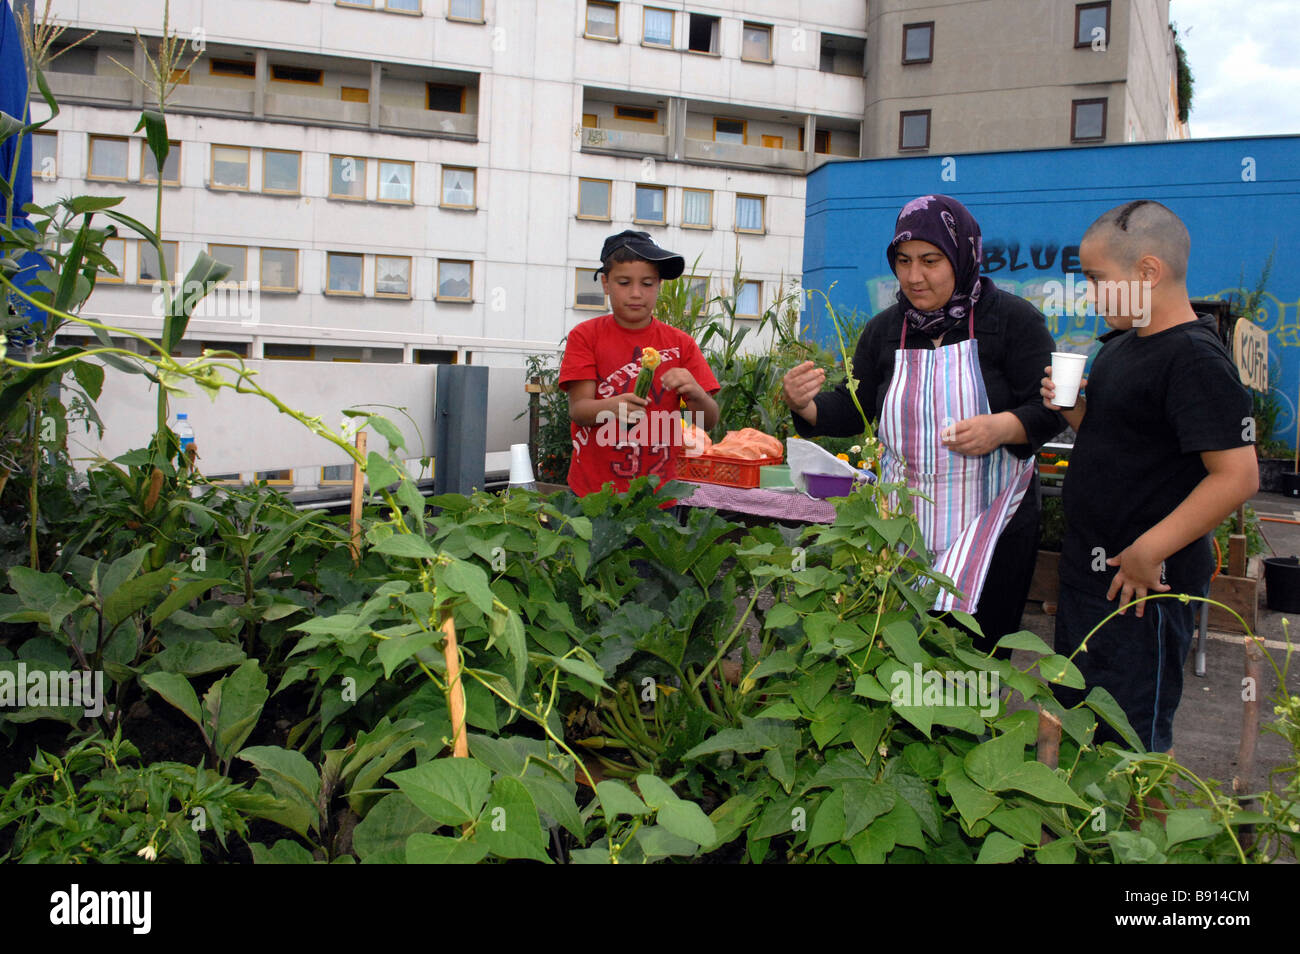 Turkish family picking vegetables, Berlin, Germany - Stock Image